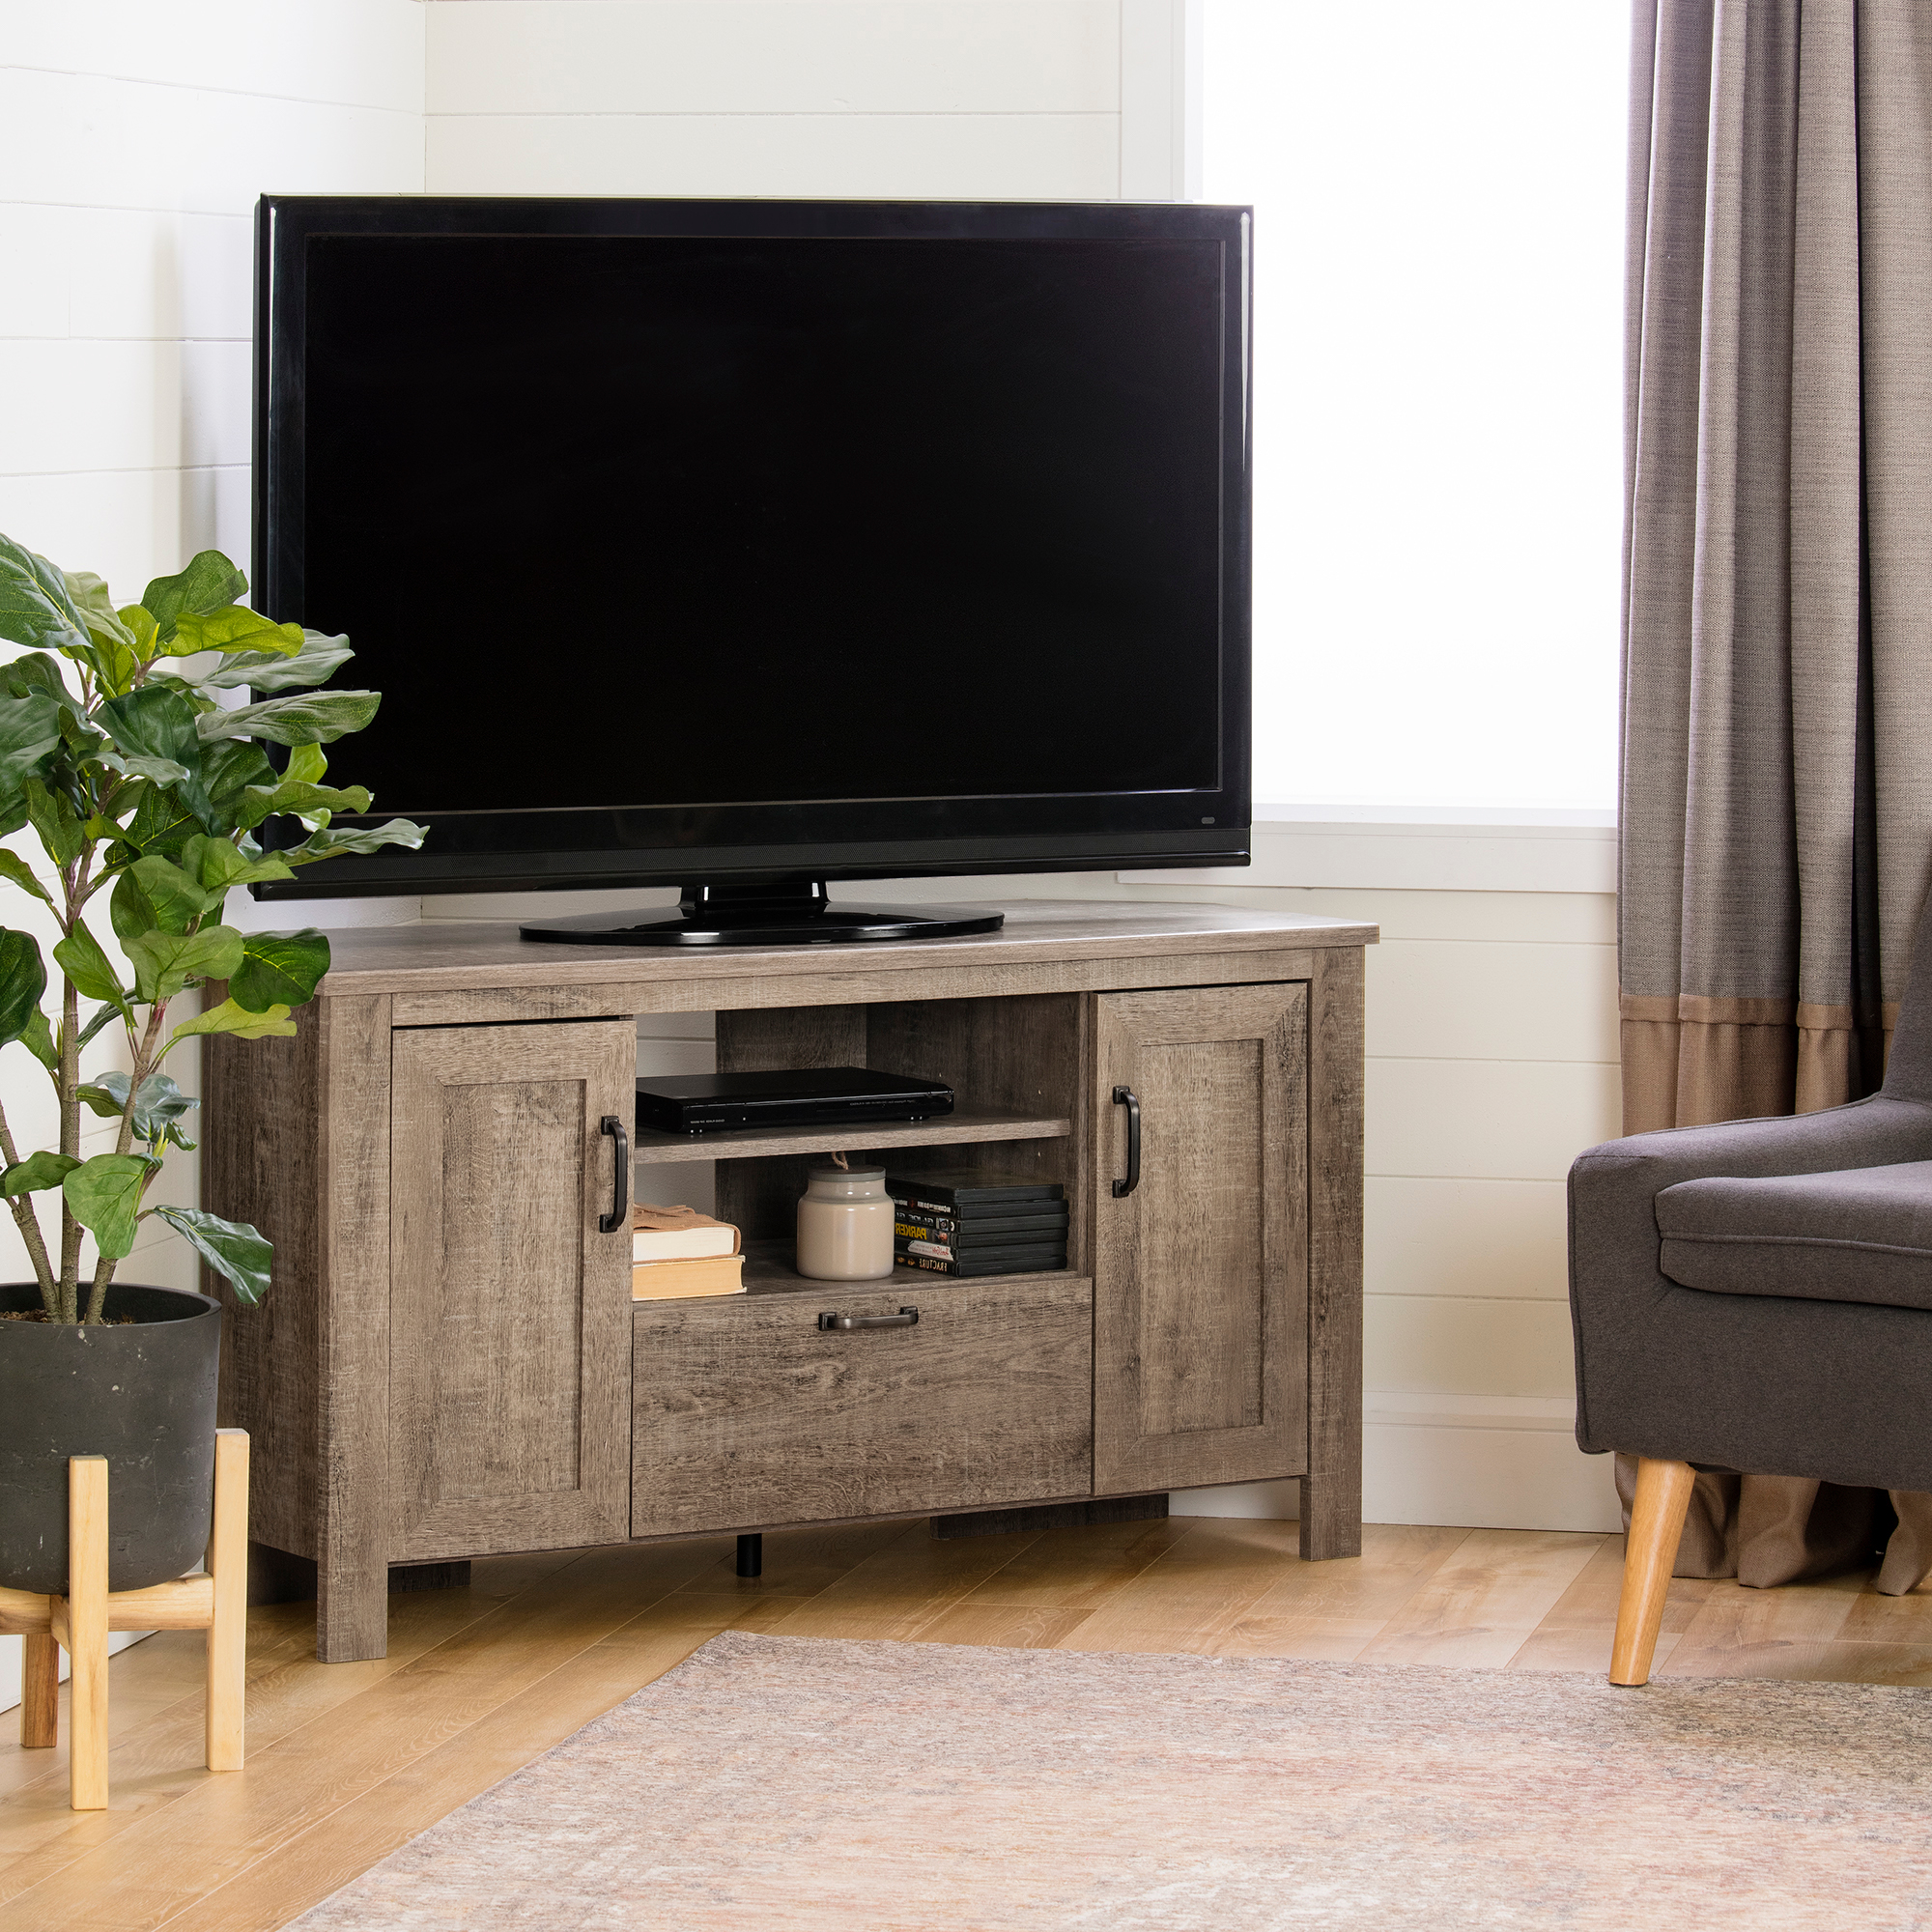 South Shore Lionel Corner Tv Stand, Multiple Finishes Inside Tv Stands With Led Lights In Multiple Finishes (View 5 of 20)